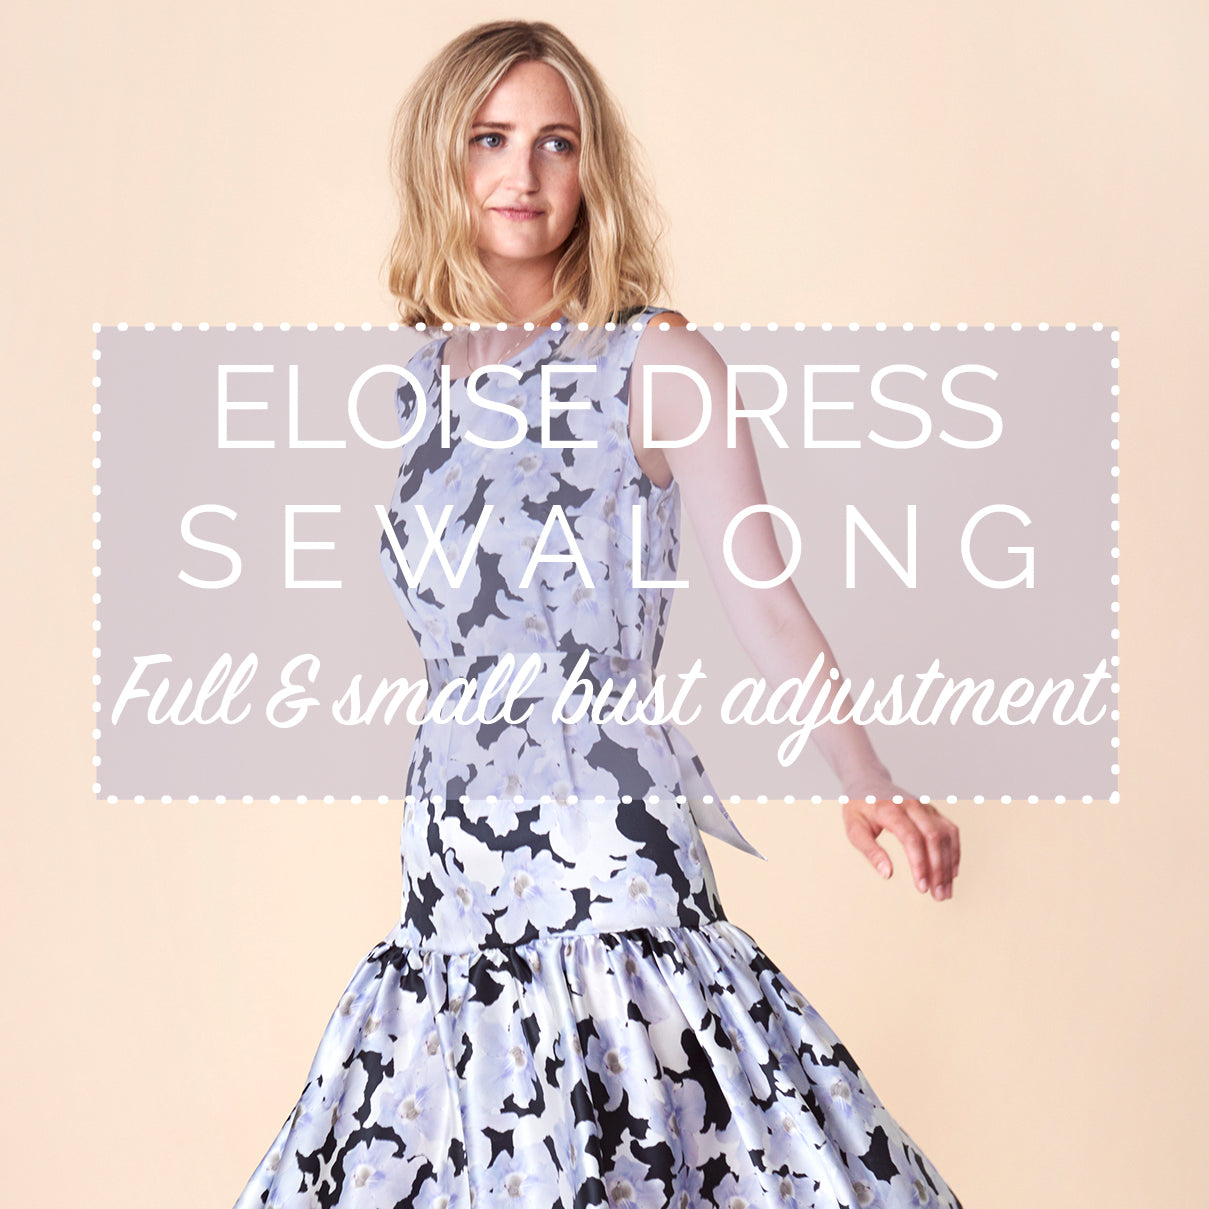 Full & small bust adjustment for the Eloise dress - FBA & SBA